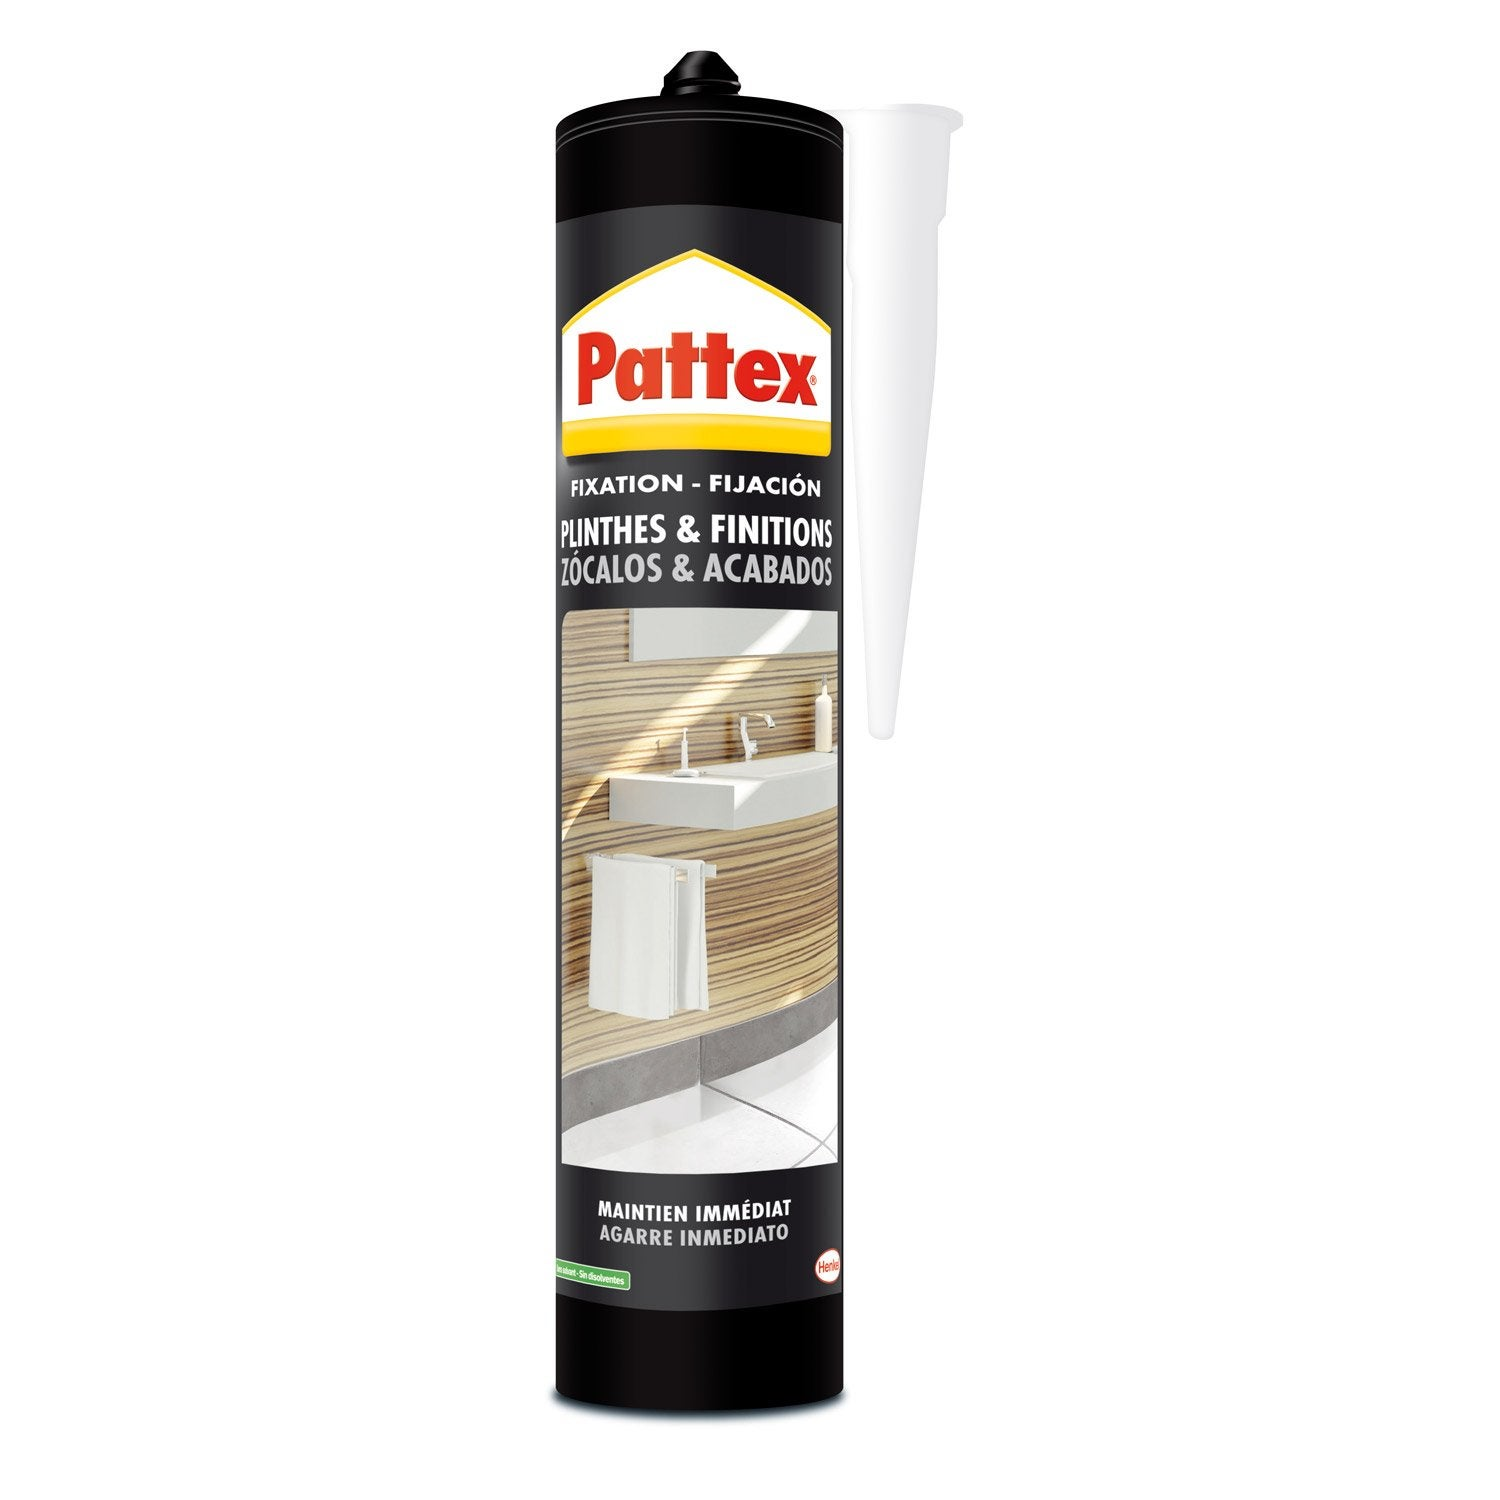 Colle mastic plinthes carrelages pattex 450 g leroy merlin - Leroy merlin colle carrelage ...